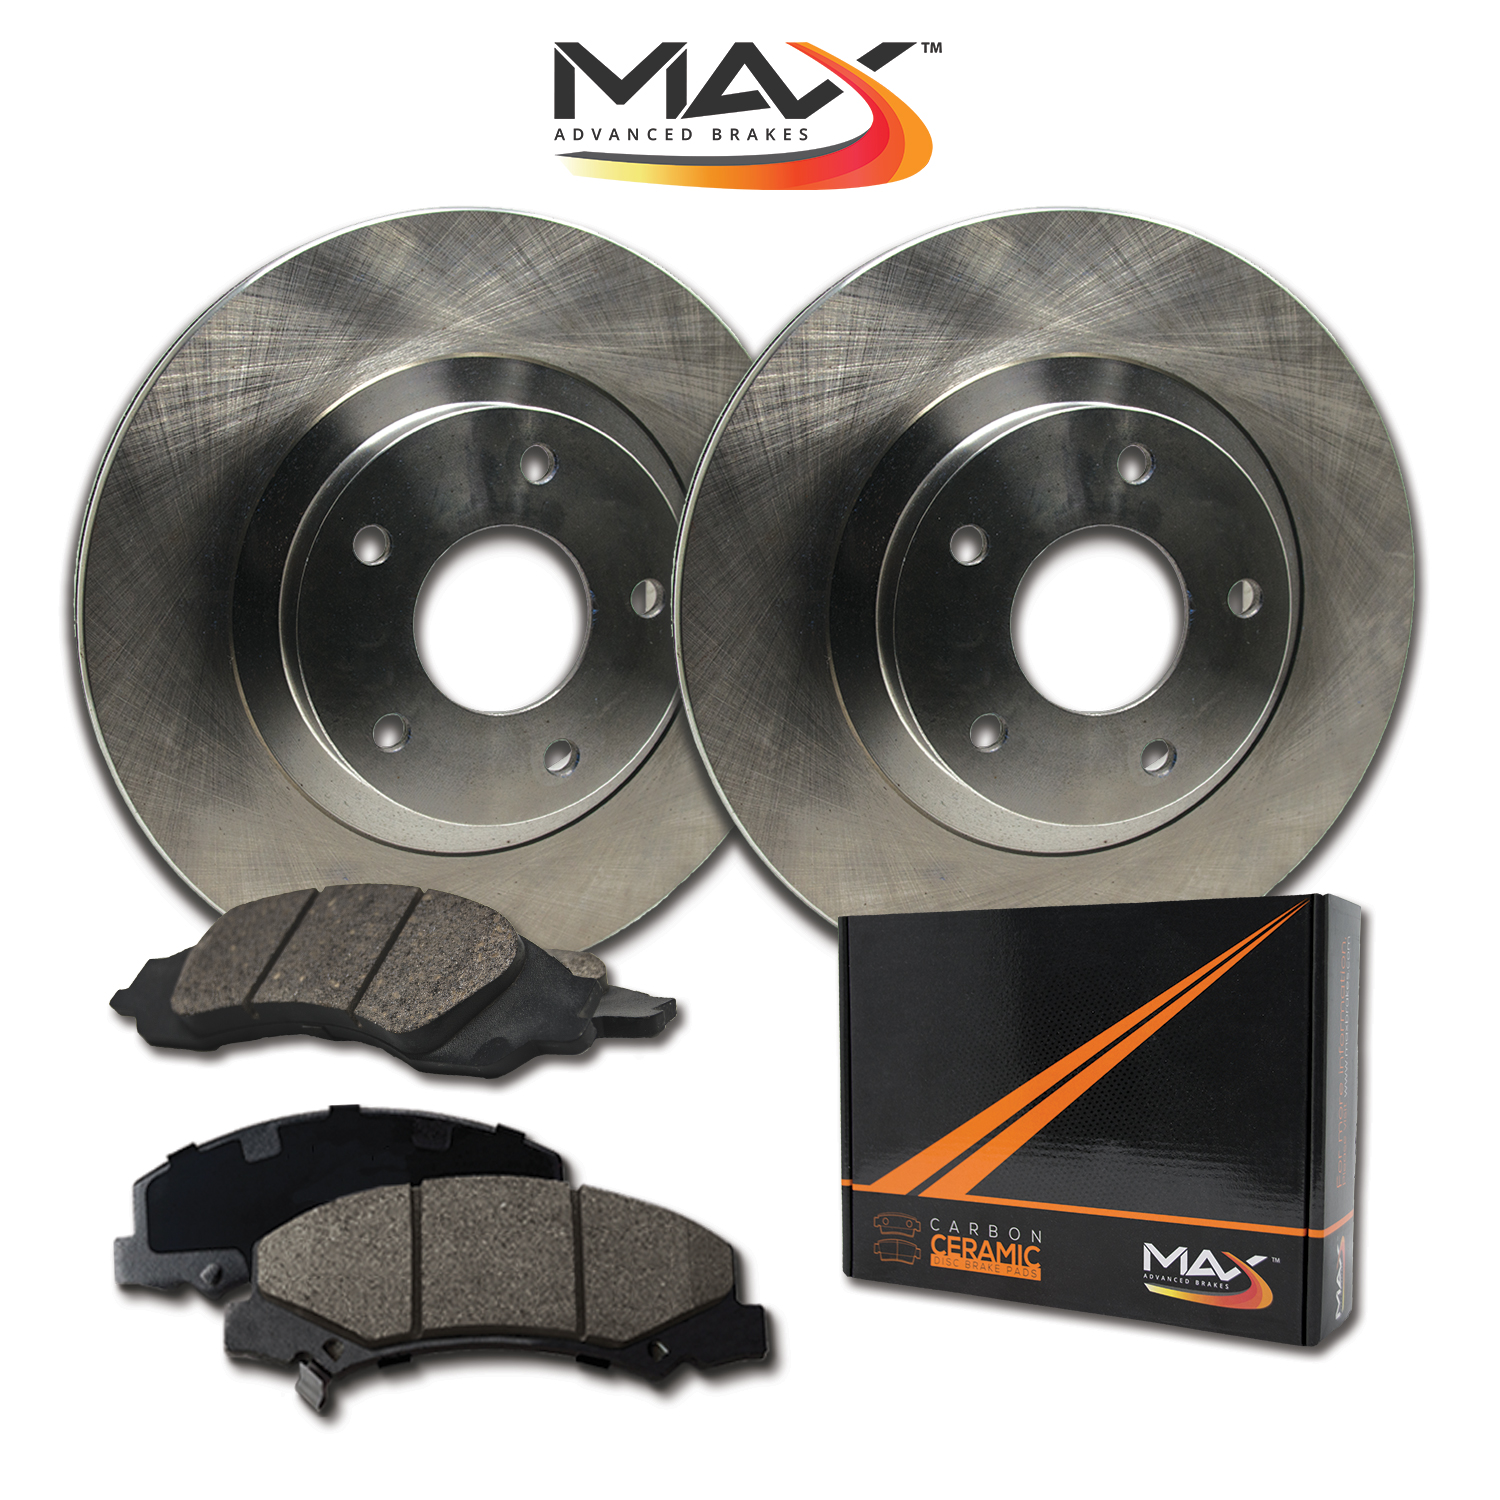 2006 2007 2008 2009 Mercedes Benz E320 Max Performance Ceramic Brake Pads F+R